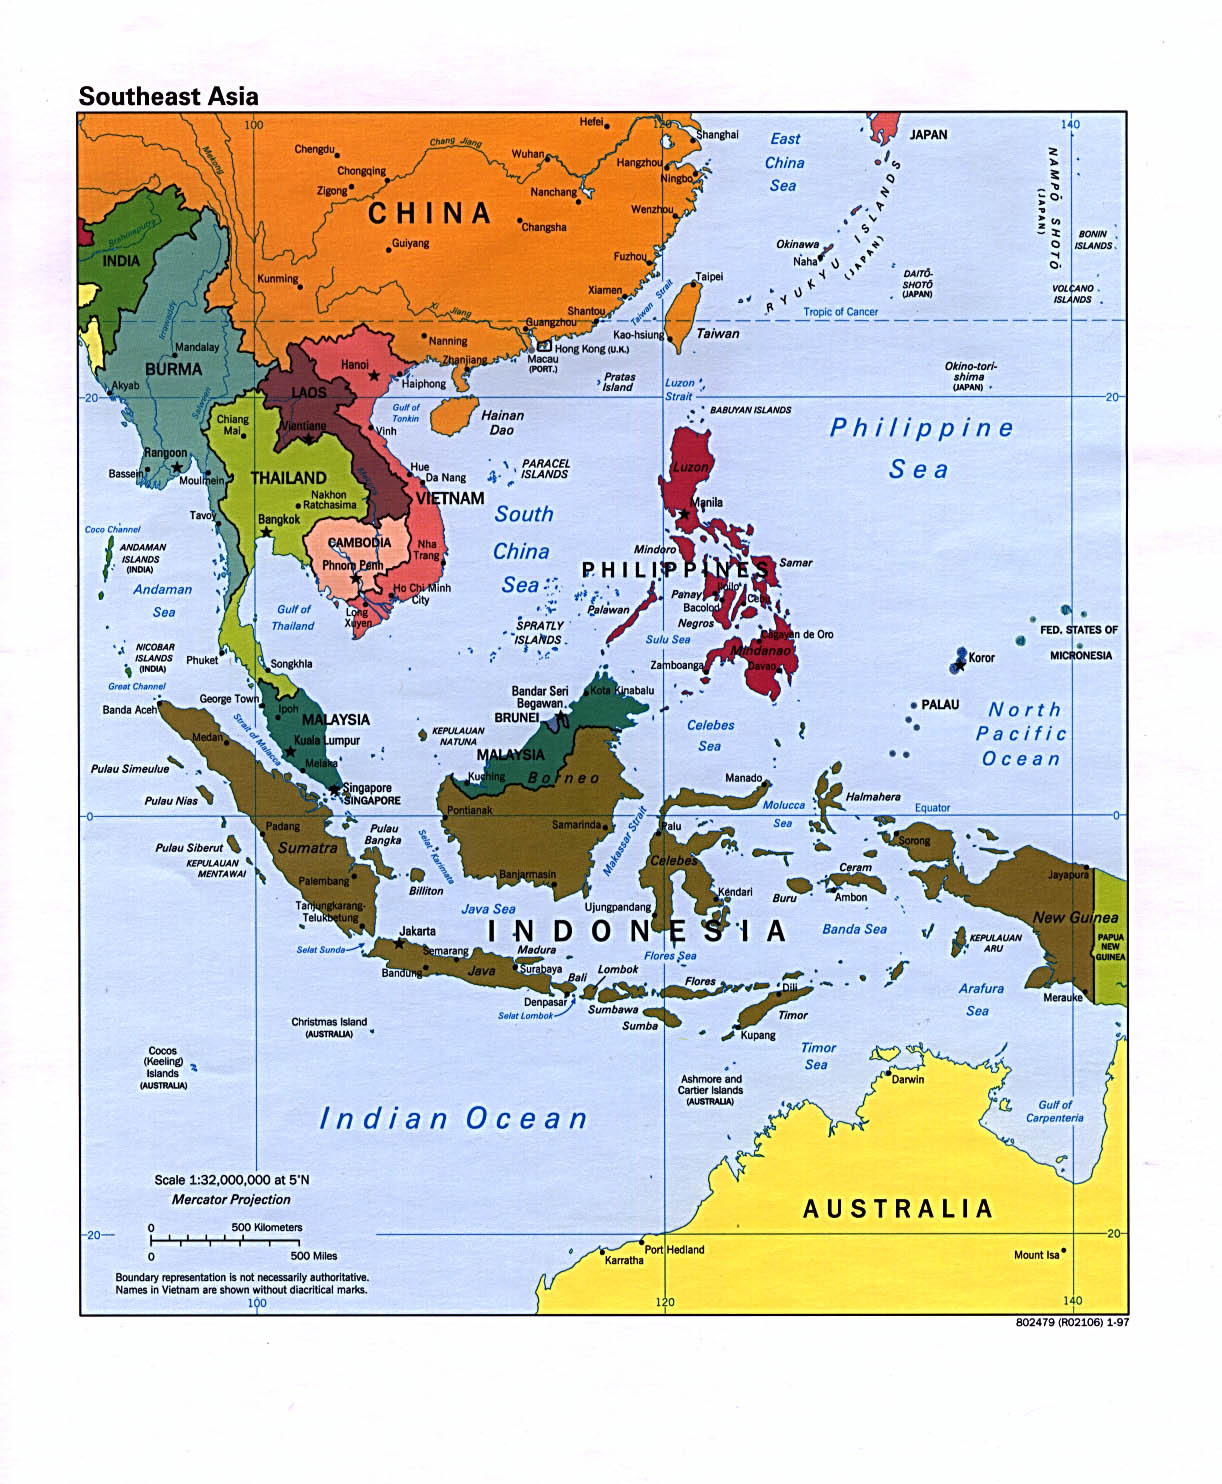 Southeast Asia Political Map 1997